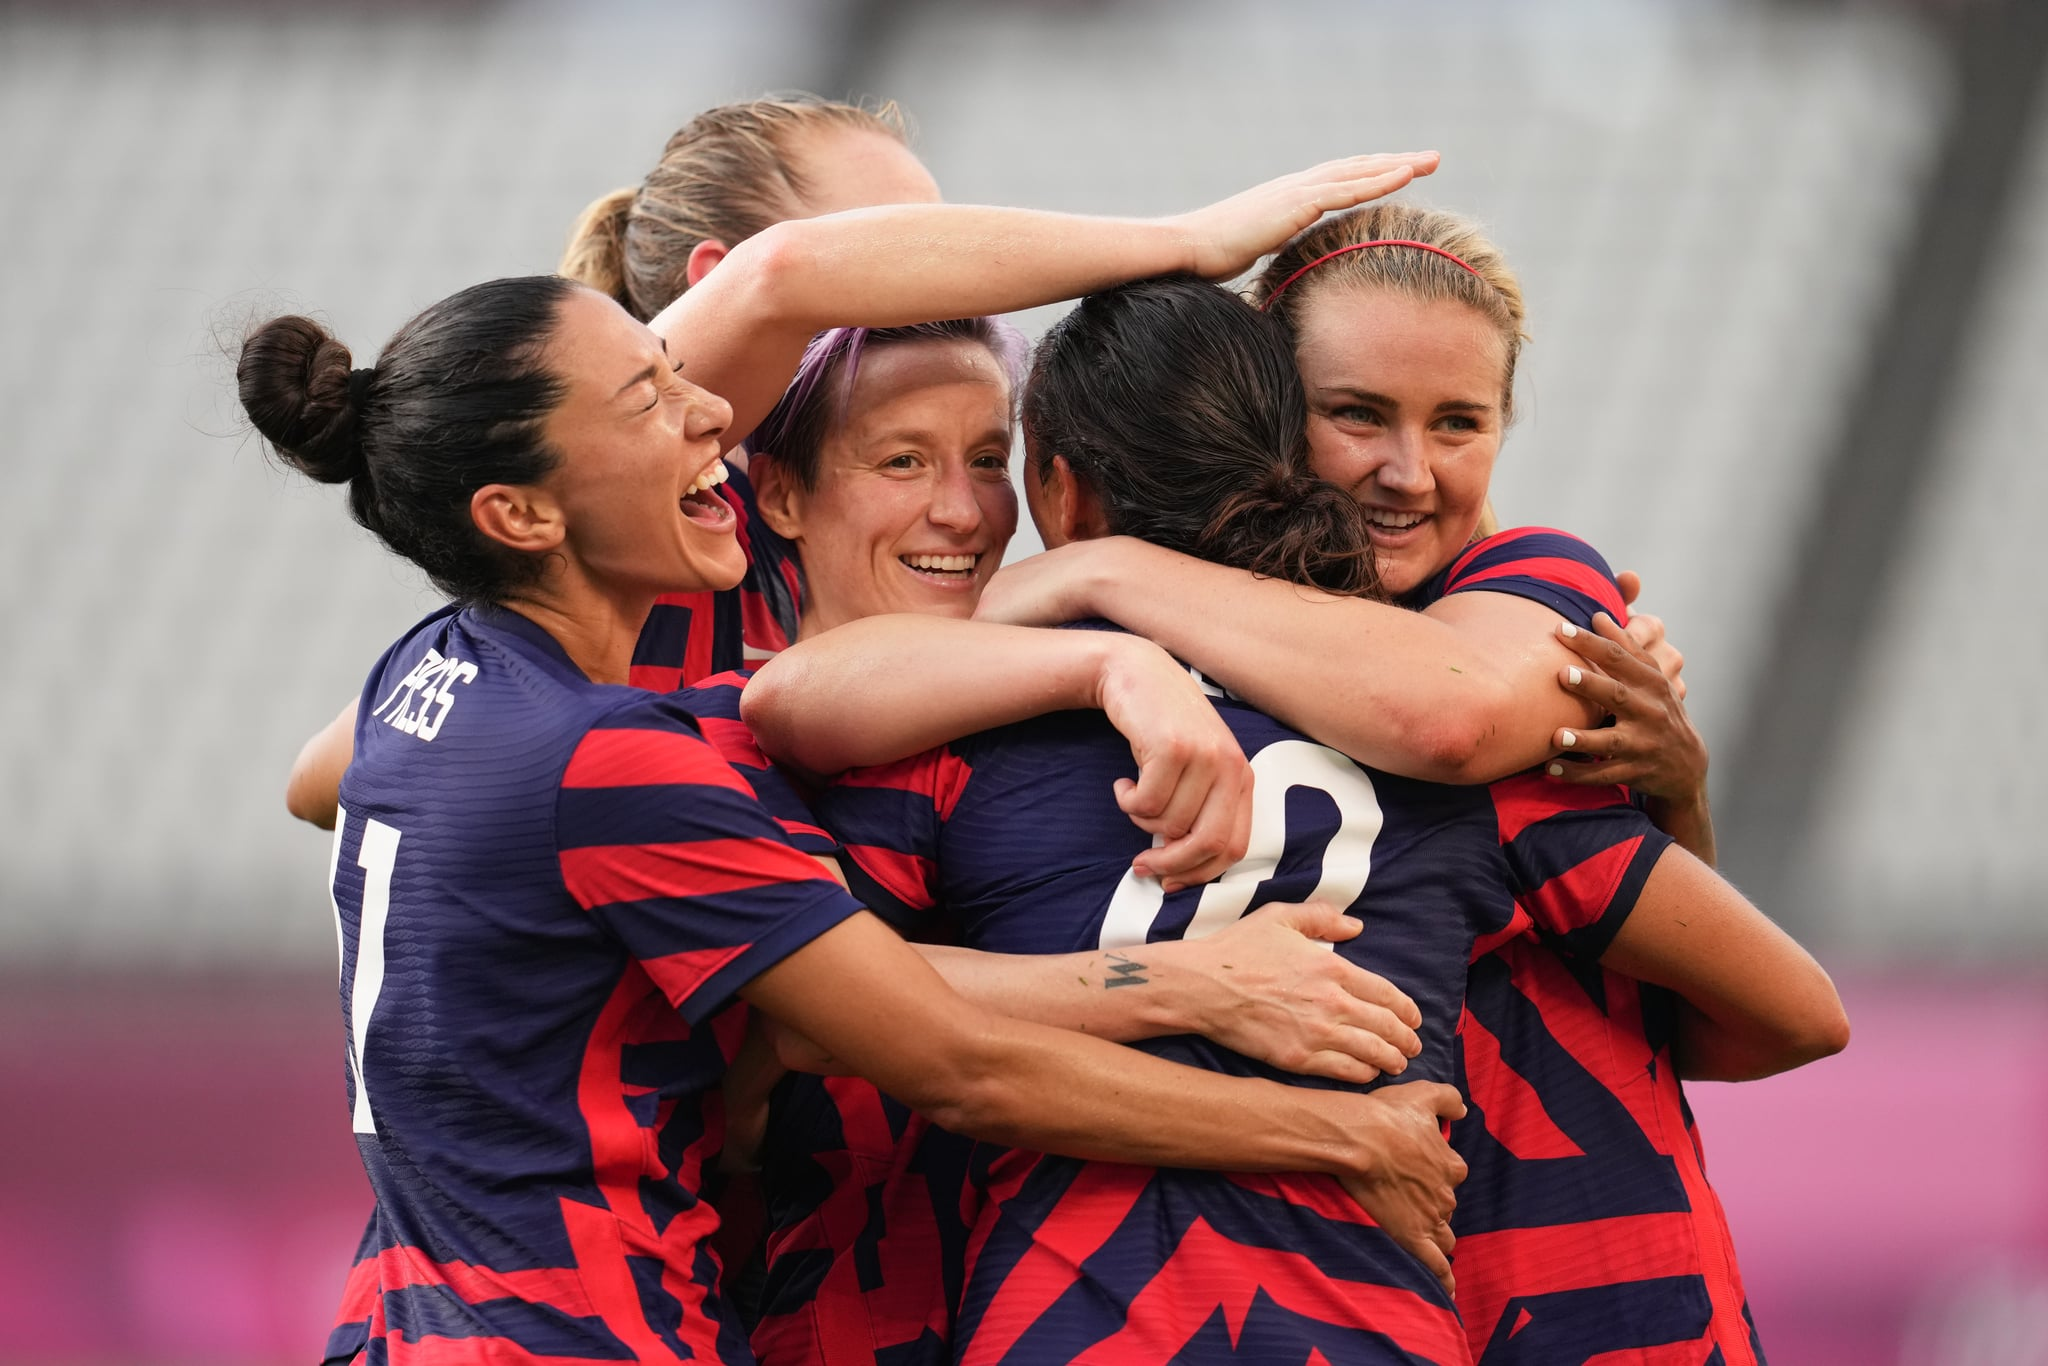 KASHIMA, JAPAN - AUGUST 5: Carli Lloyd #10 of the United States celebrates scoring with teammates during a game between Australia and USWNT at Kashima Soccer Stadium on August 5, 2021 in Kashima, Japan. (Photo by Brad Smith/ISI Photos/Getty Images)